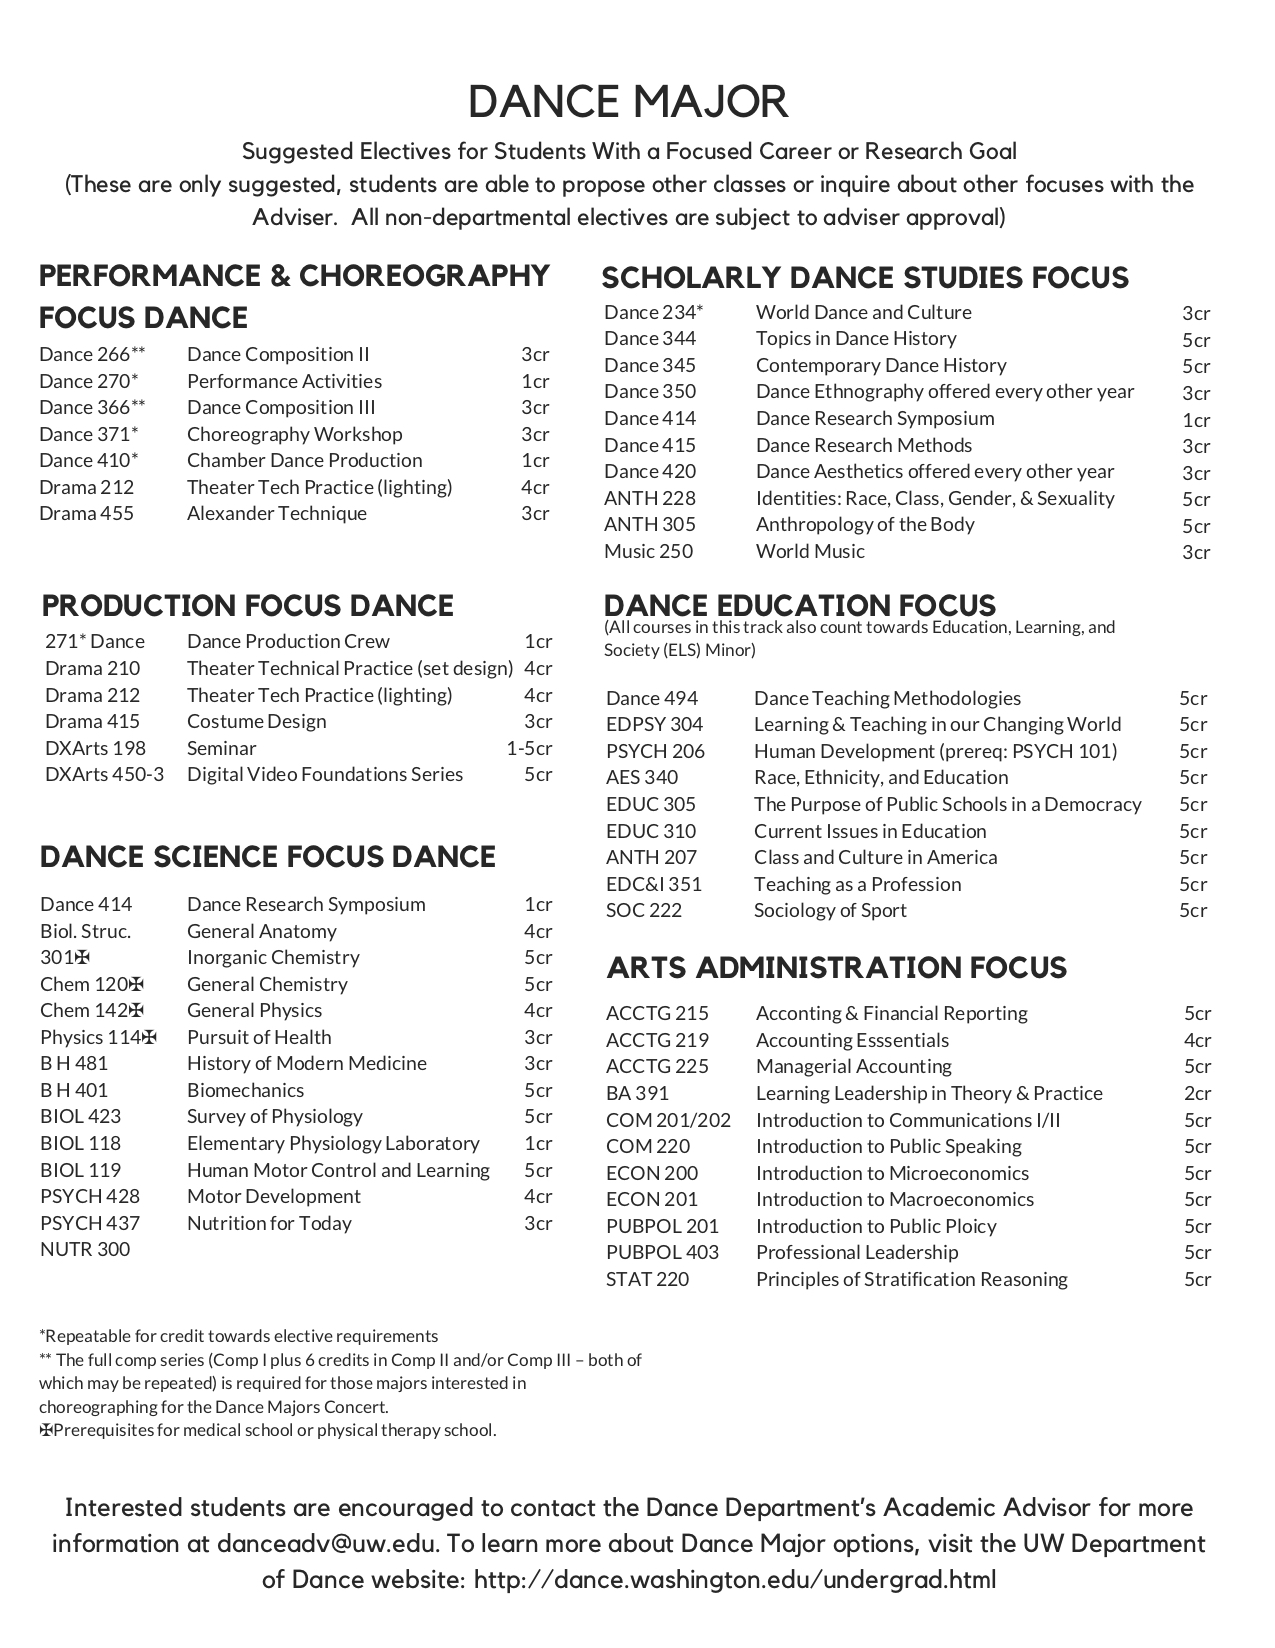 Description of Dance Major Requirements (page 2/2)